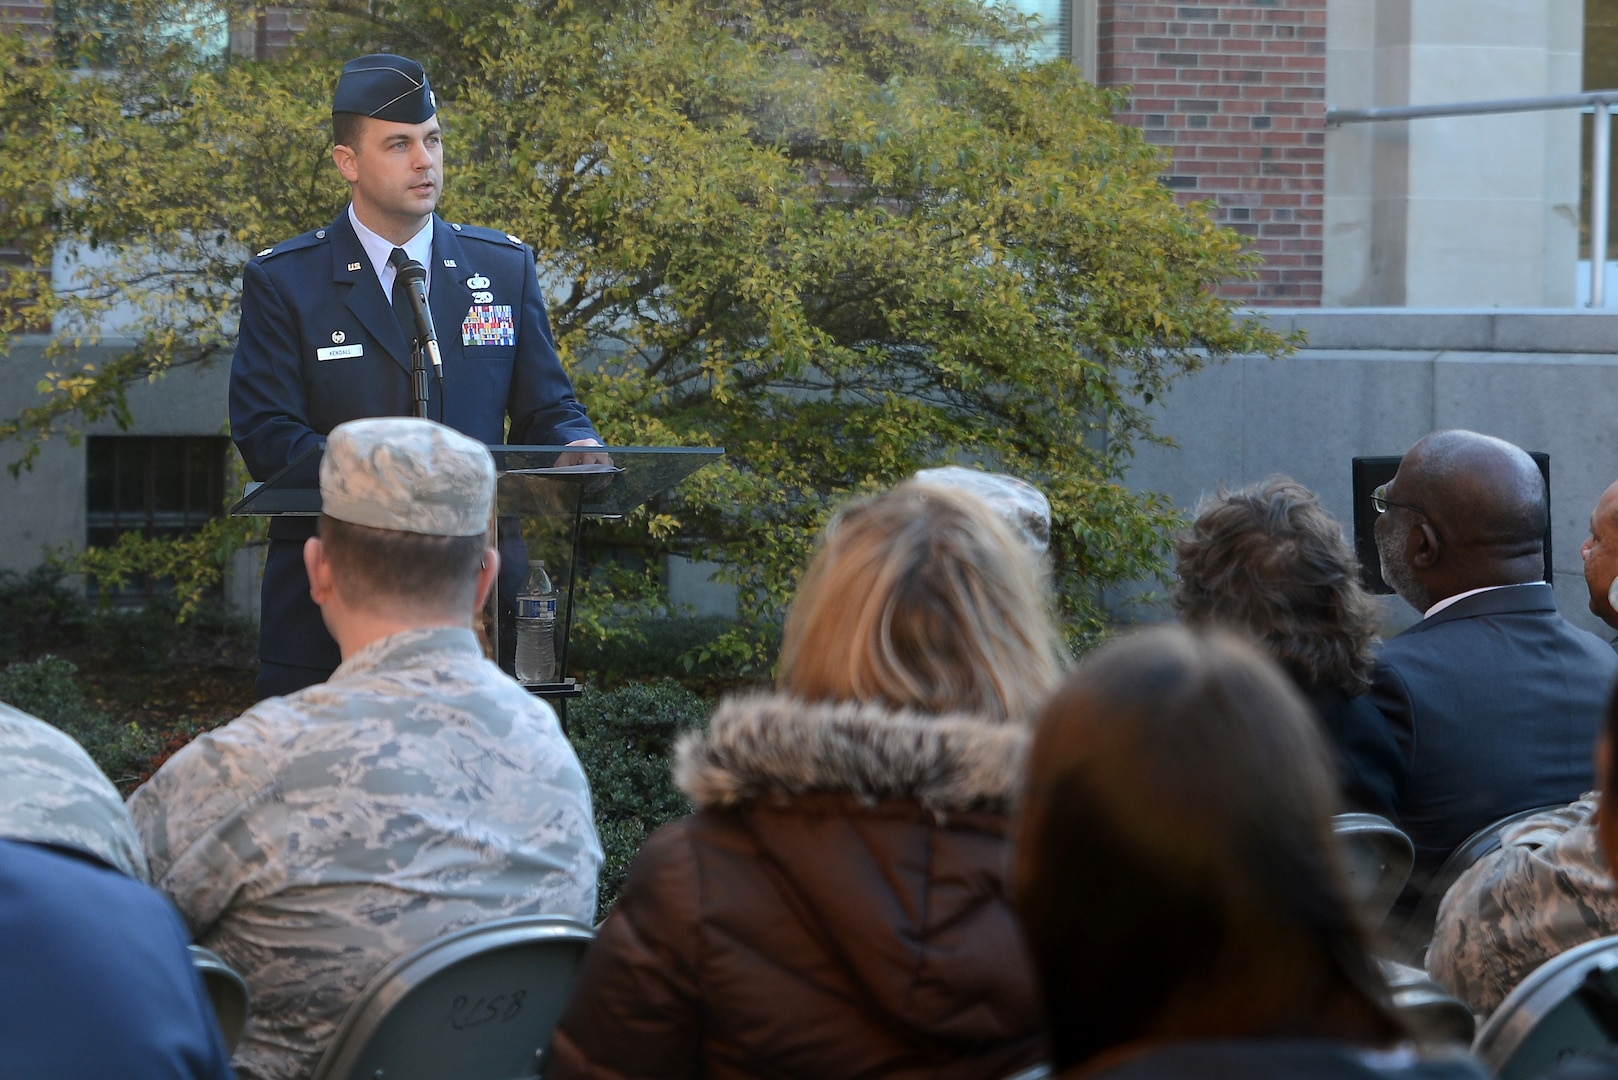 a man speaks to an audience during a ceremony